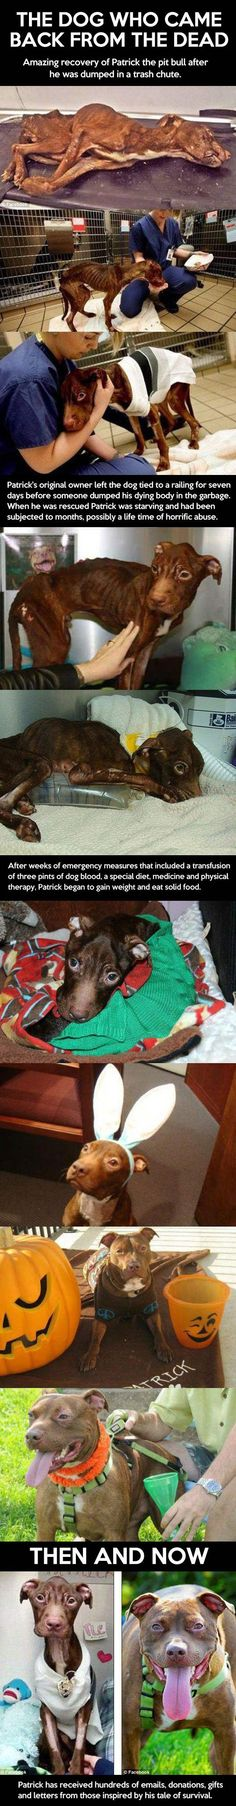 Patrick, the amazing pit bull… - http://limk.com/news/patrick-the-amazing-pit-bull-081343613/